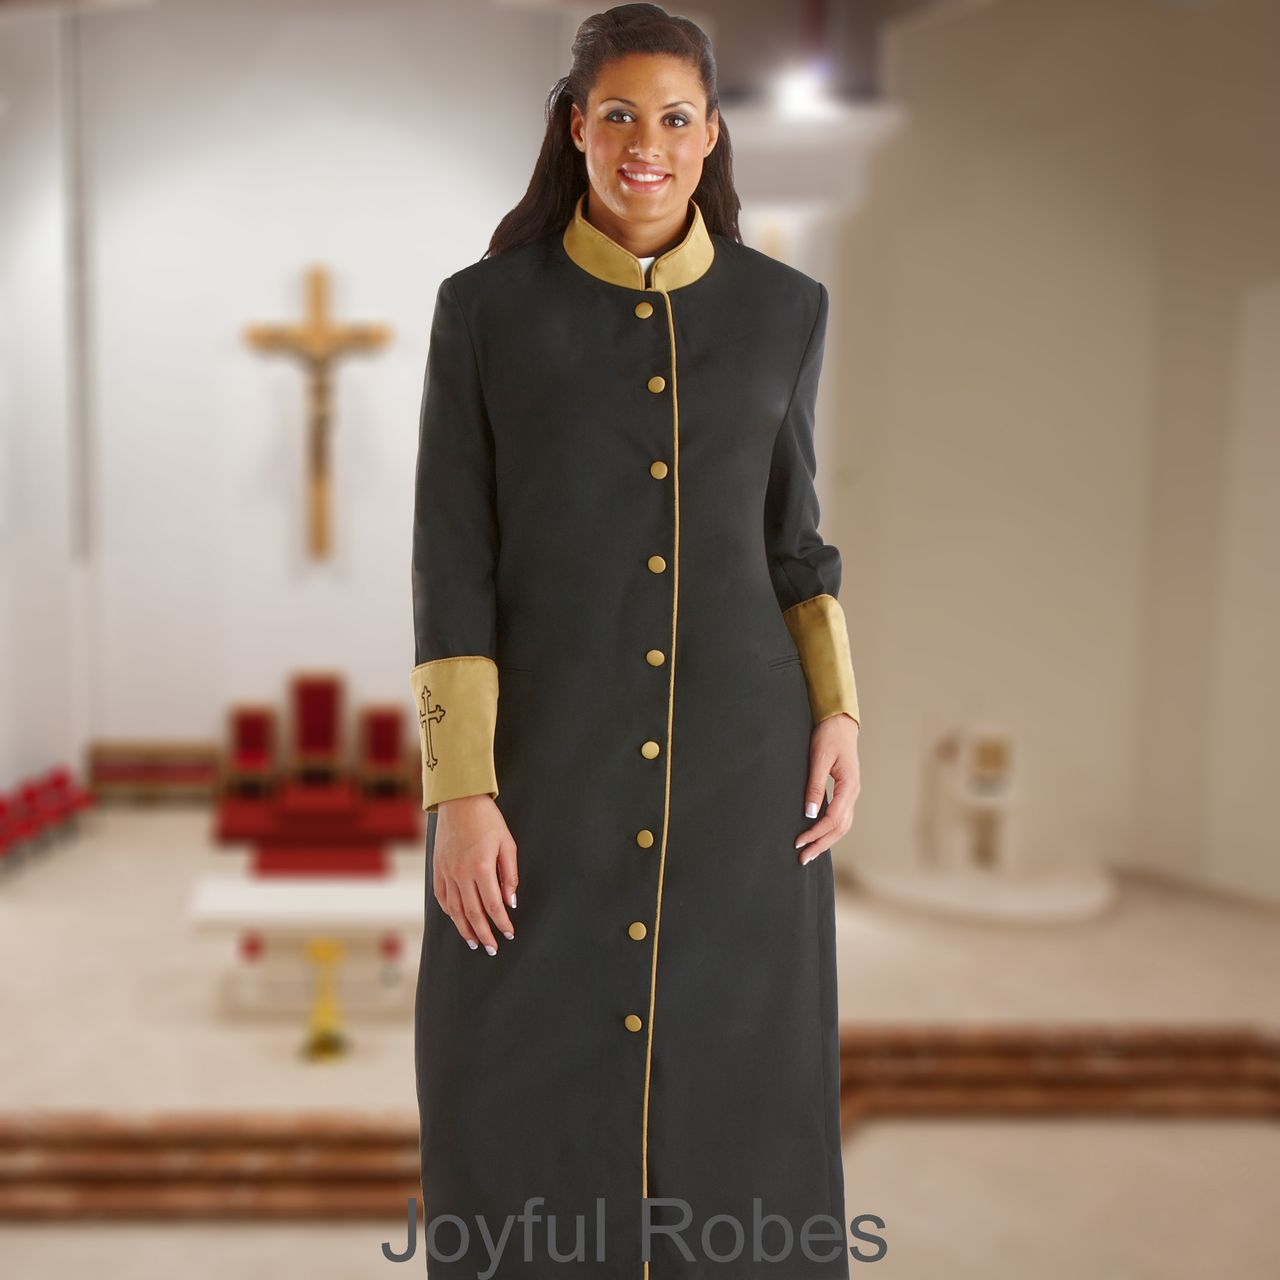 301 W. Women's Clergy/Pastor Robe Black/Gold Cuff